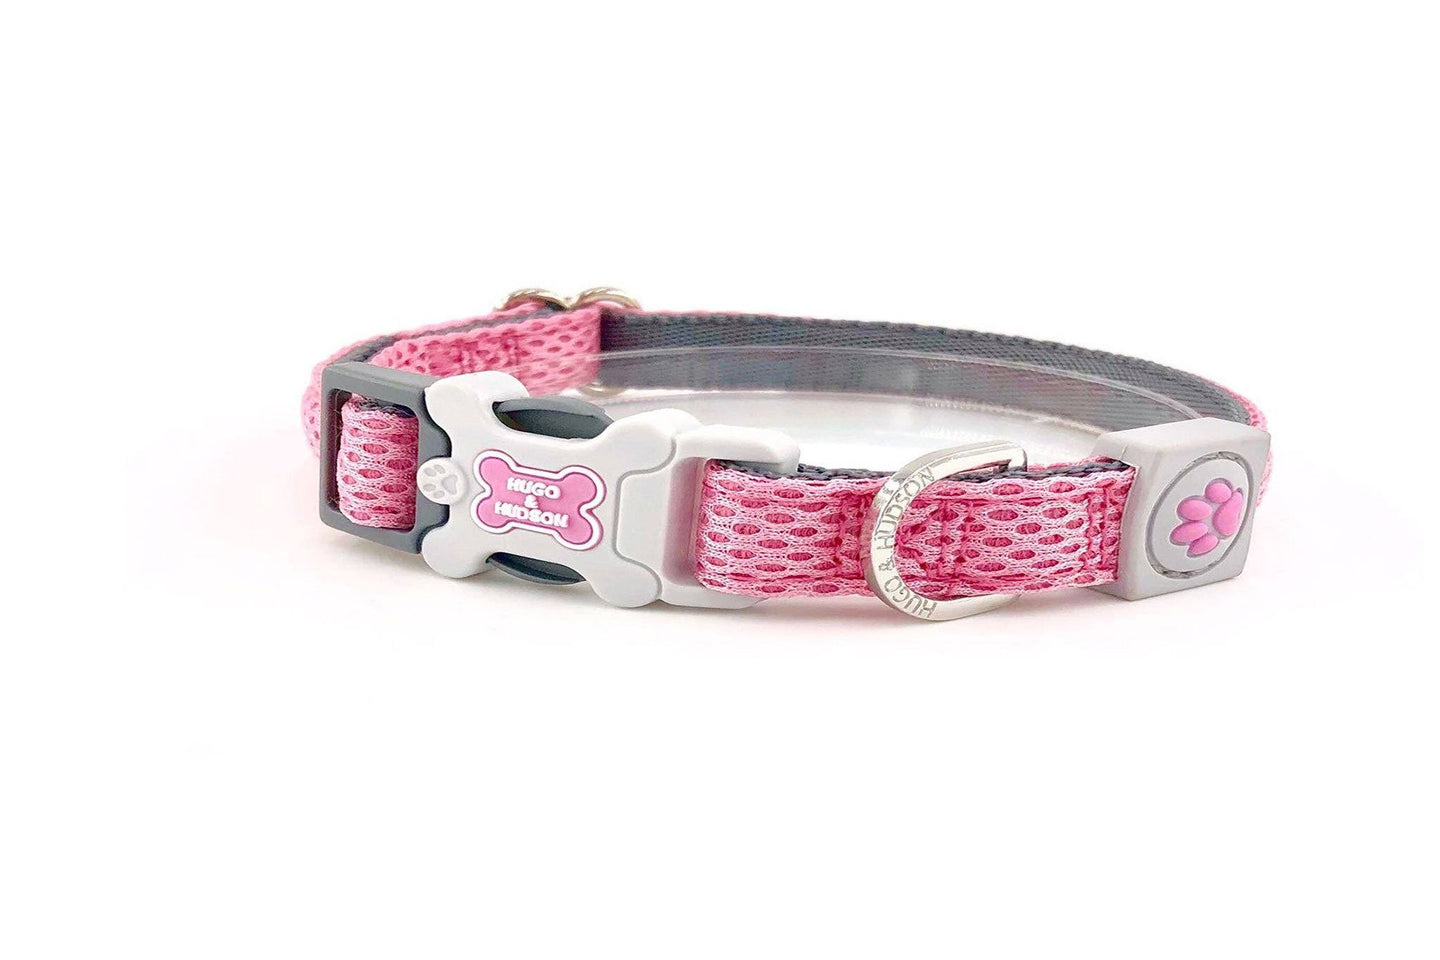 Breathable Mesh Dog Leash & Collar - Pink Mesh Collar & Lead Combination